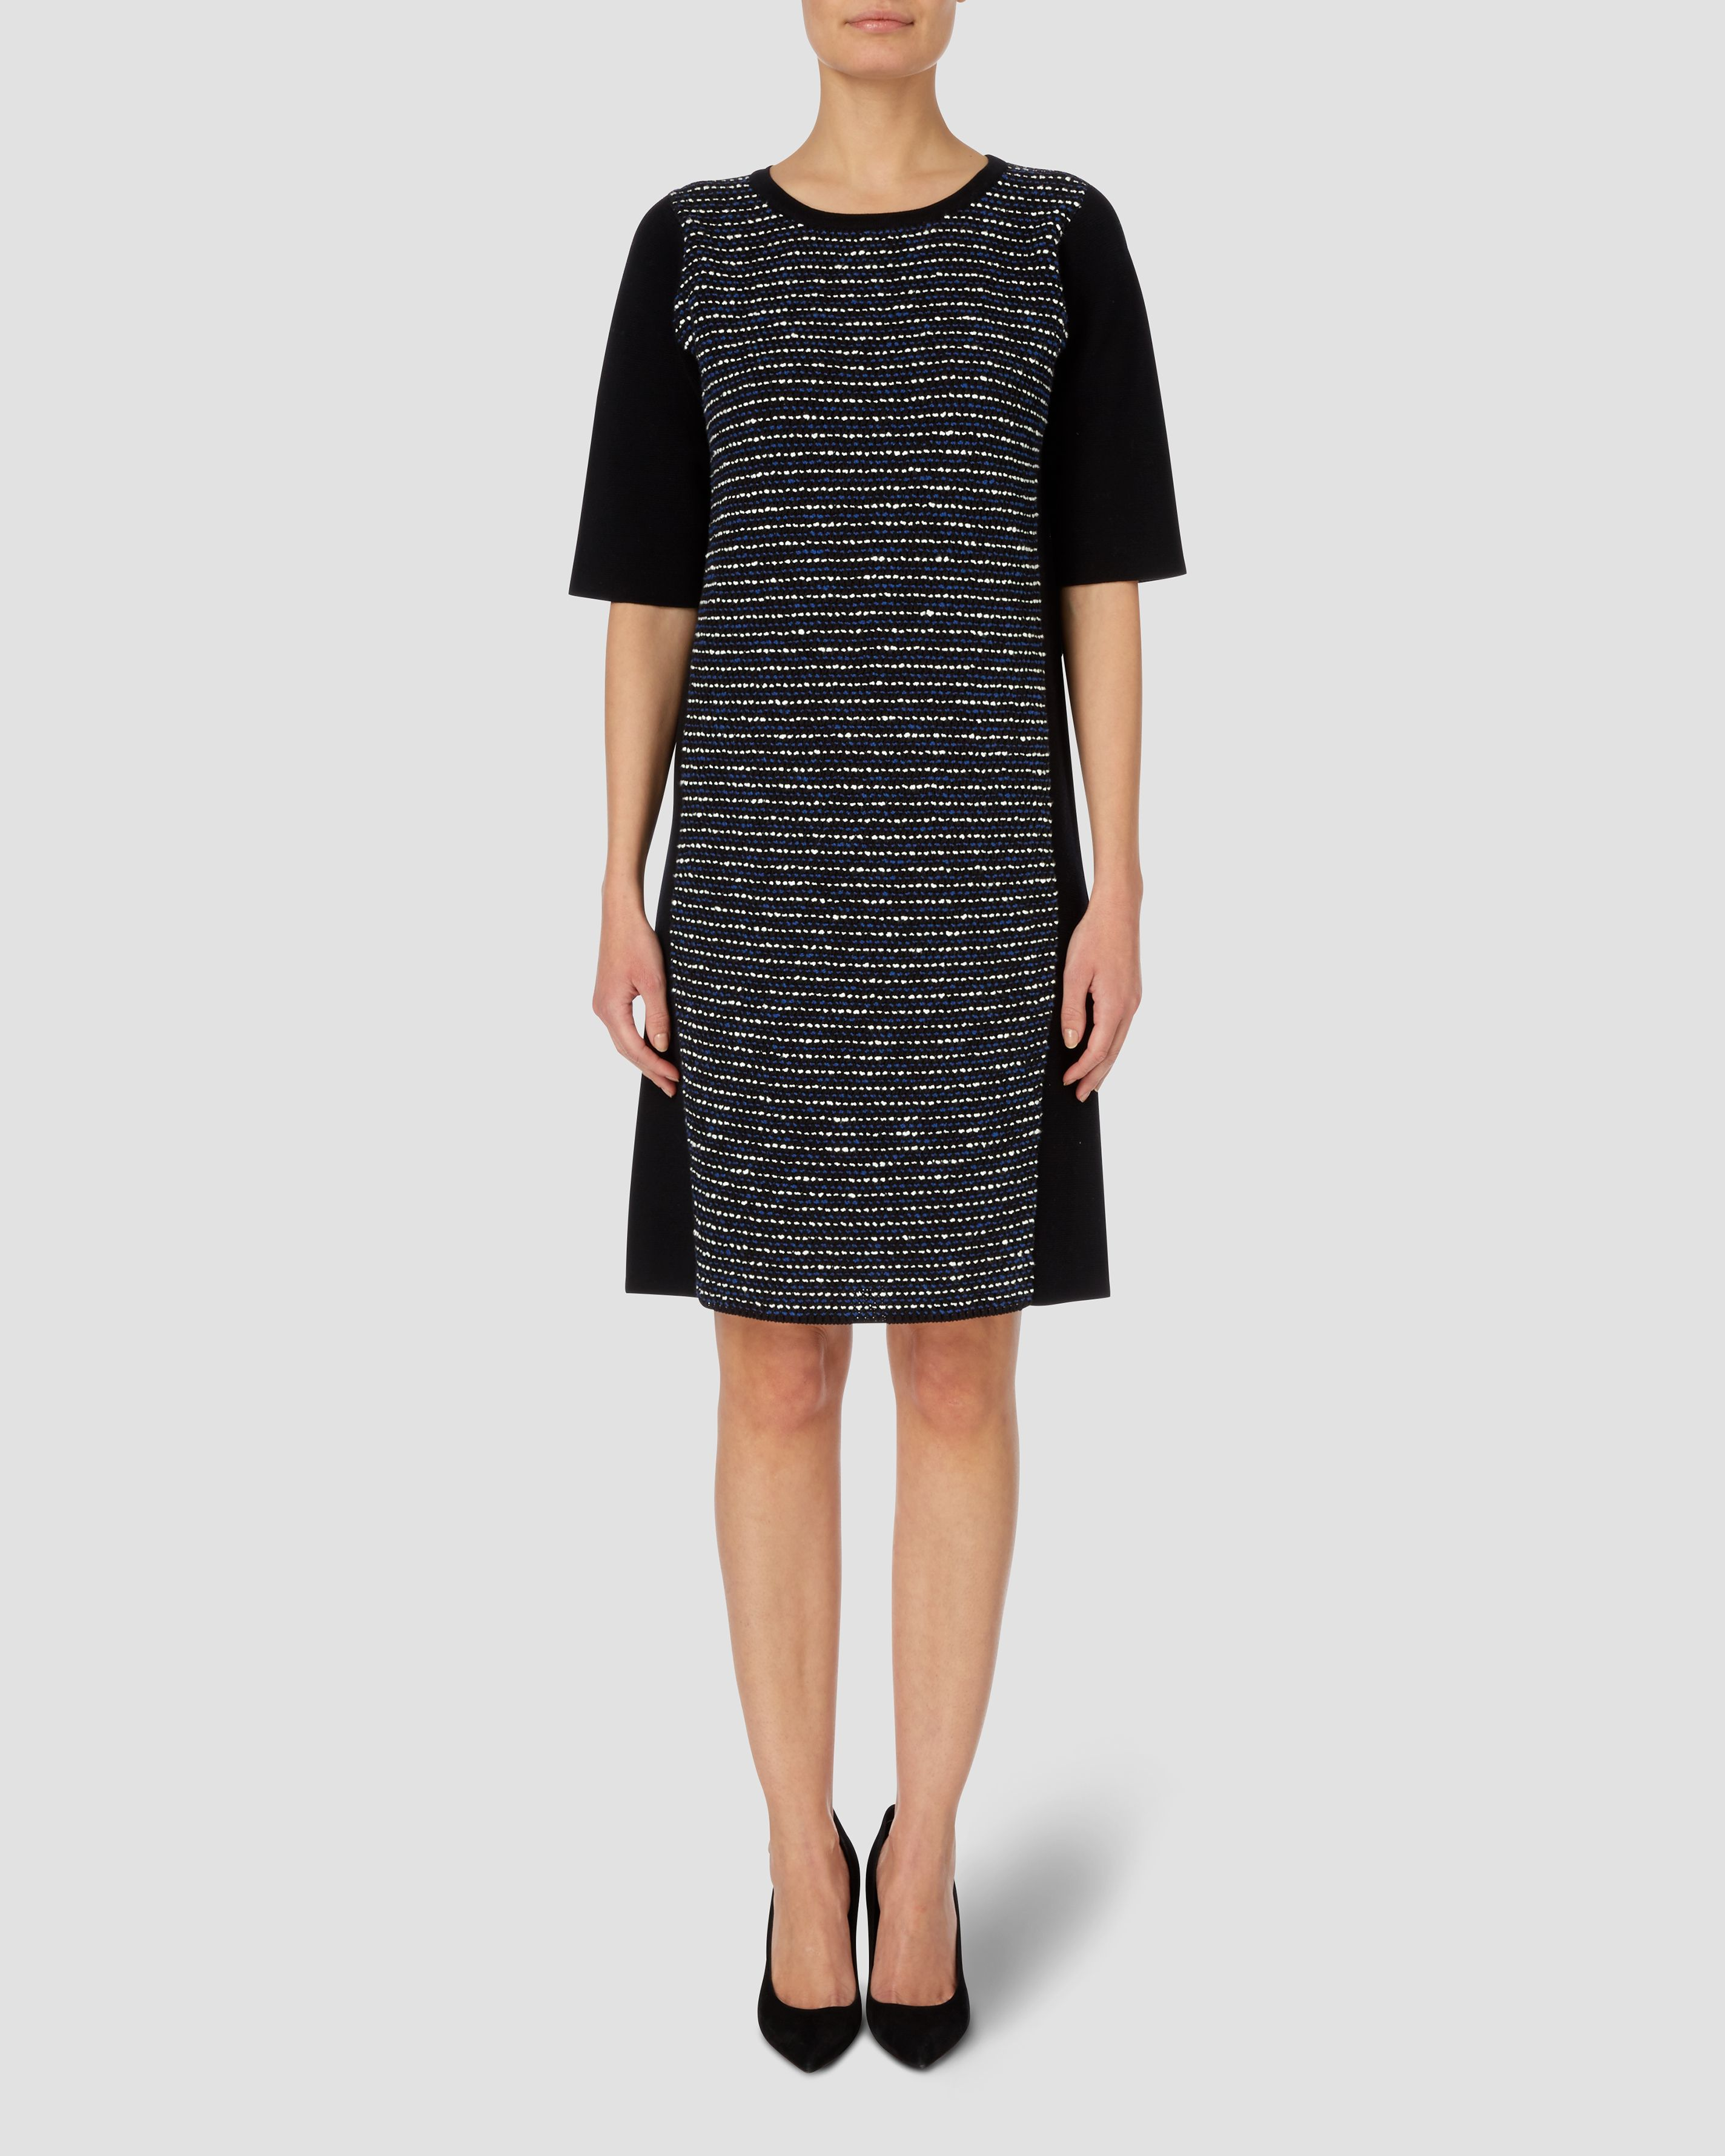 Textured Front Knit Dress